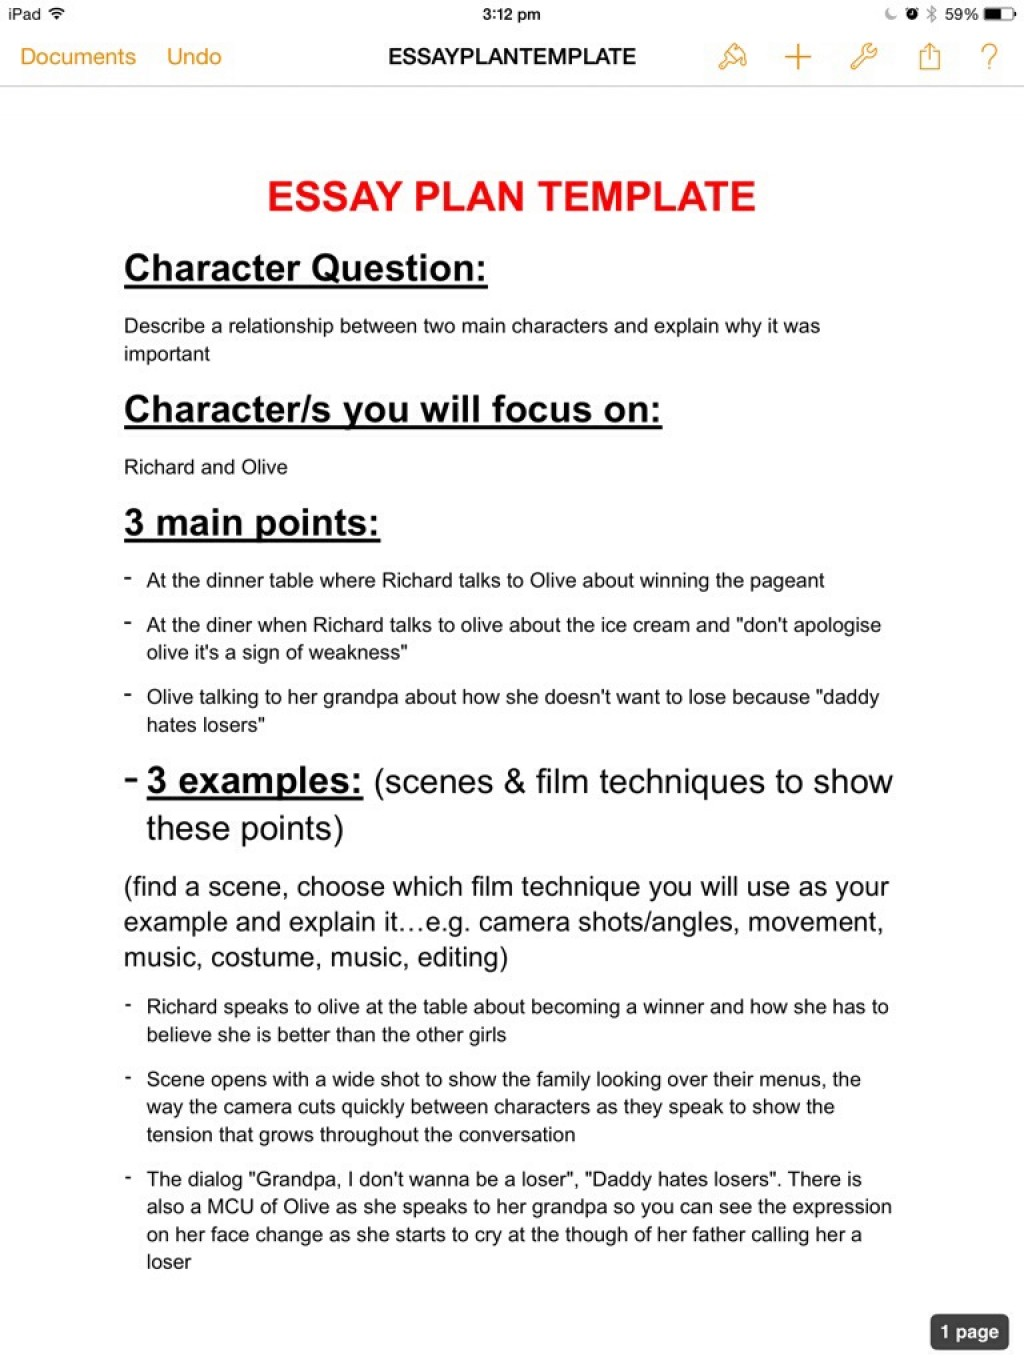 007 Essay Example Plan Stirring Template Word Planning Sheet Critical Large